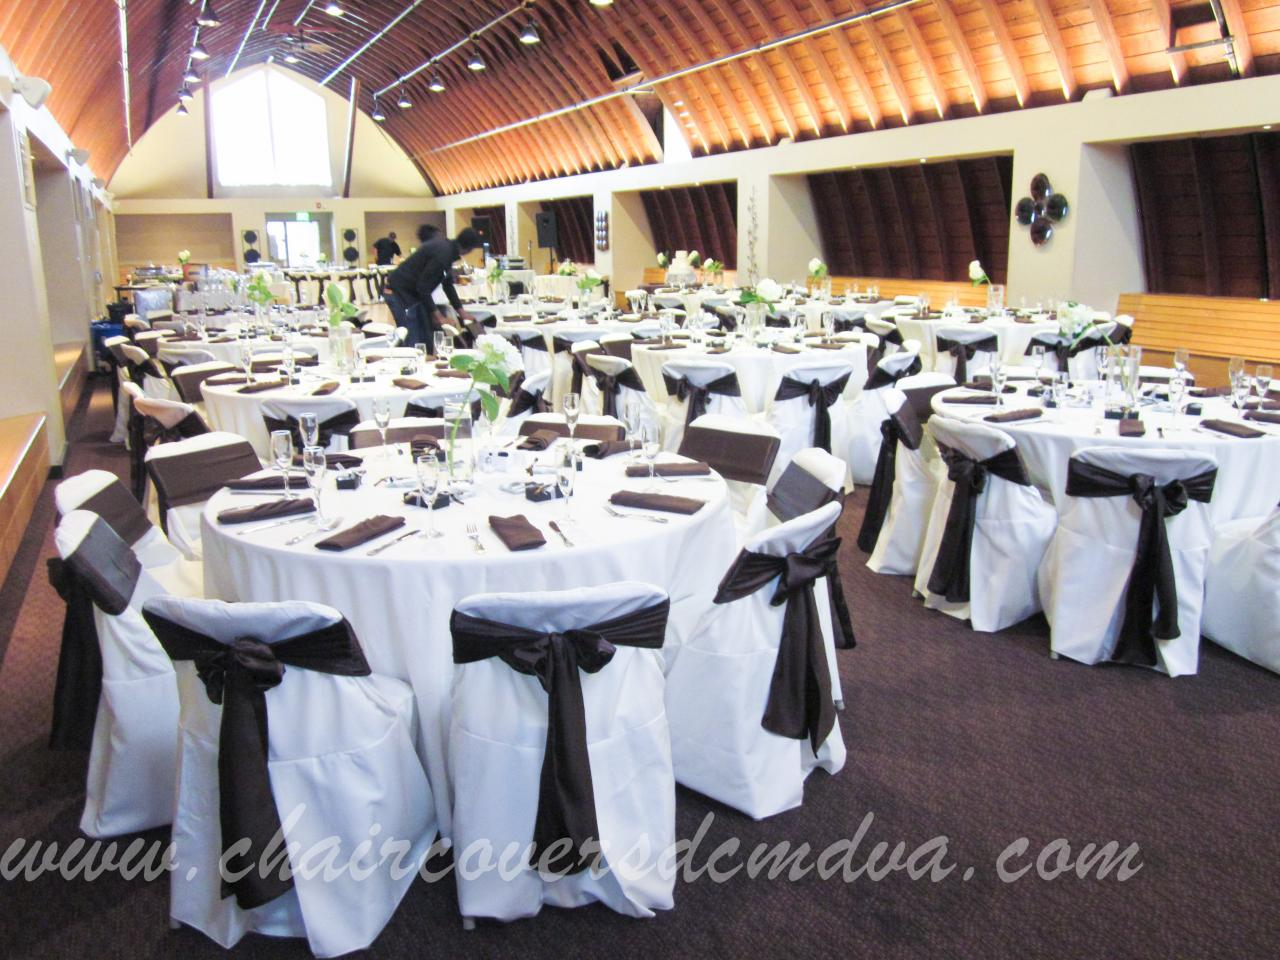 Wedding chair covers in dc md amp va gallery